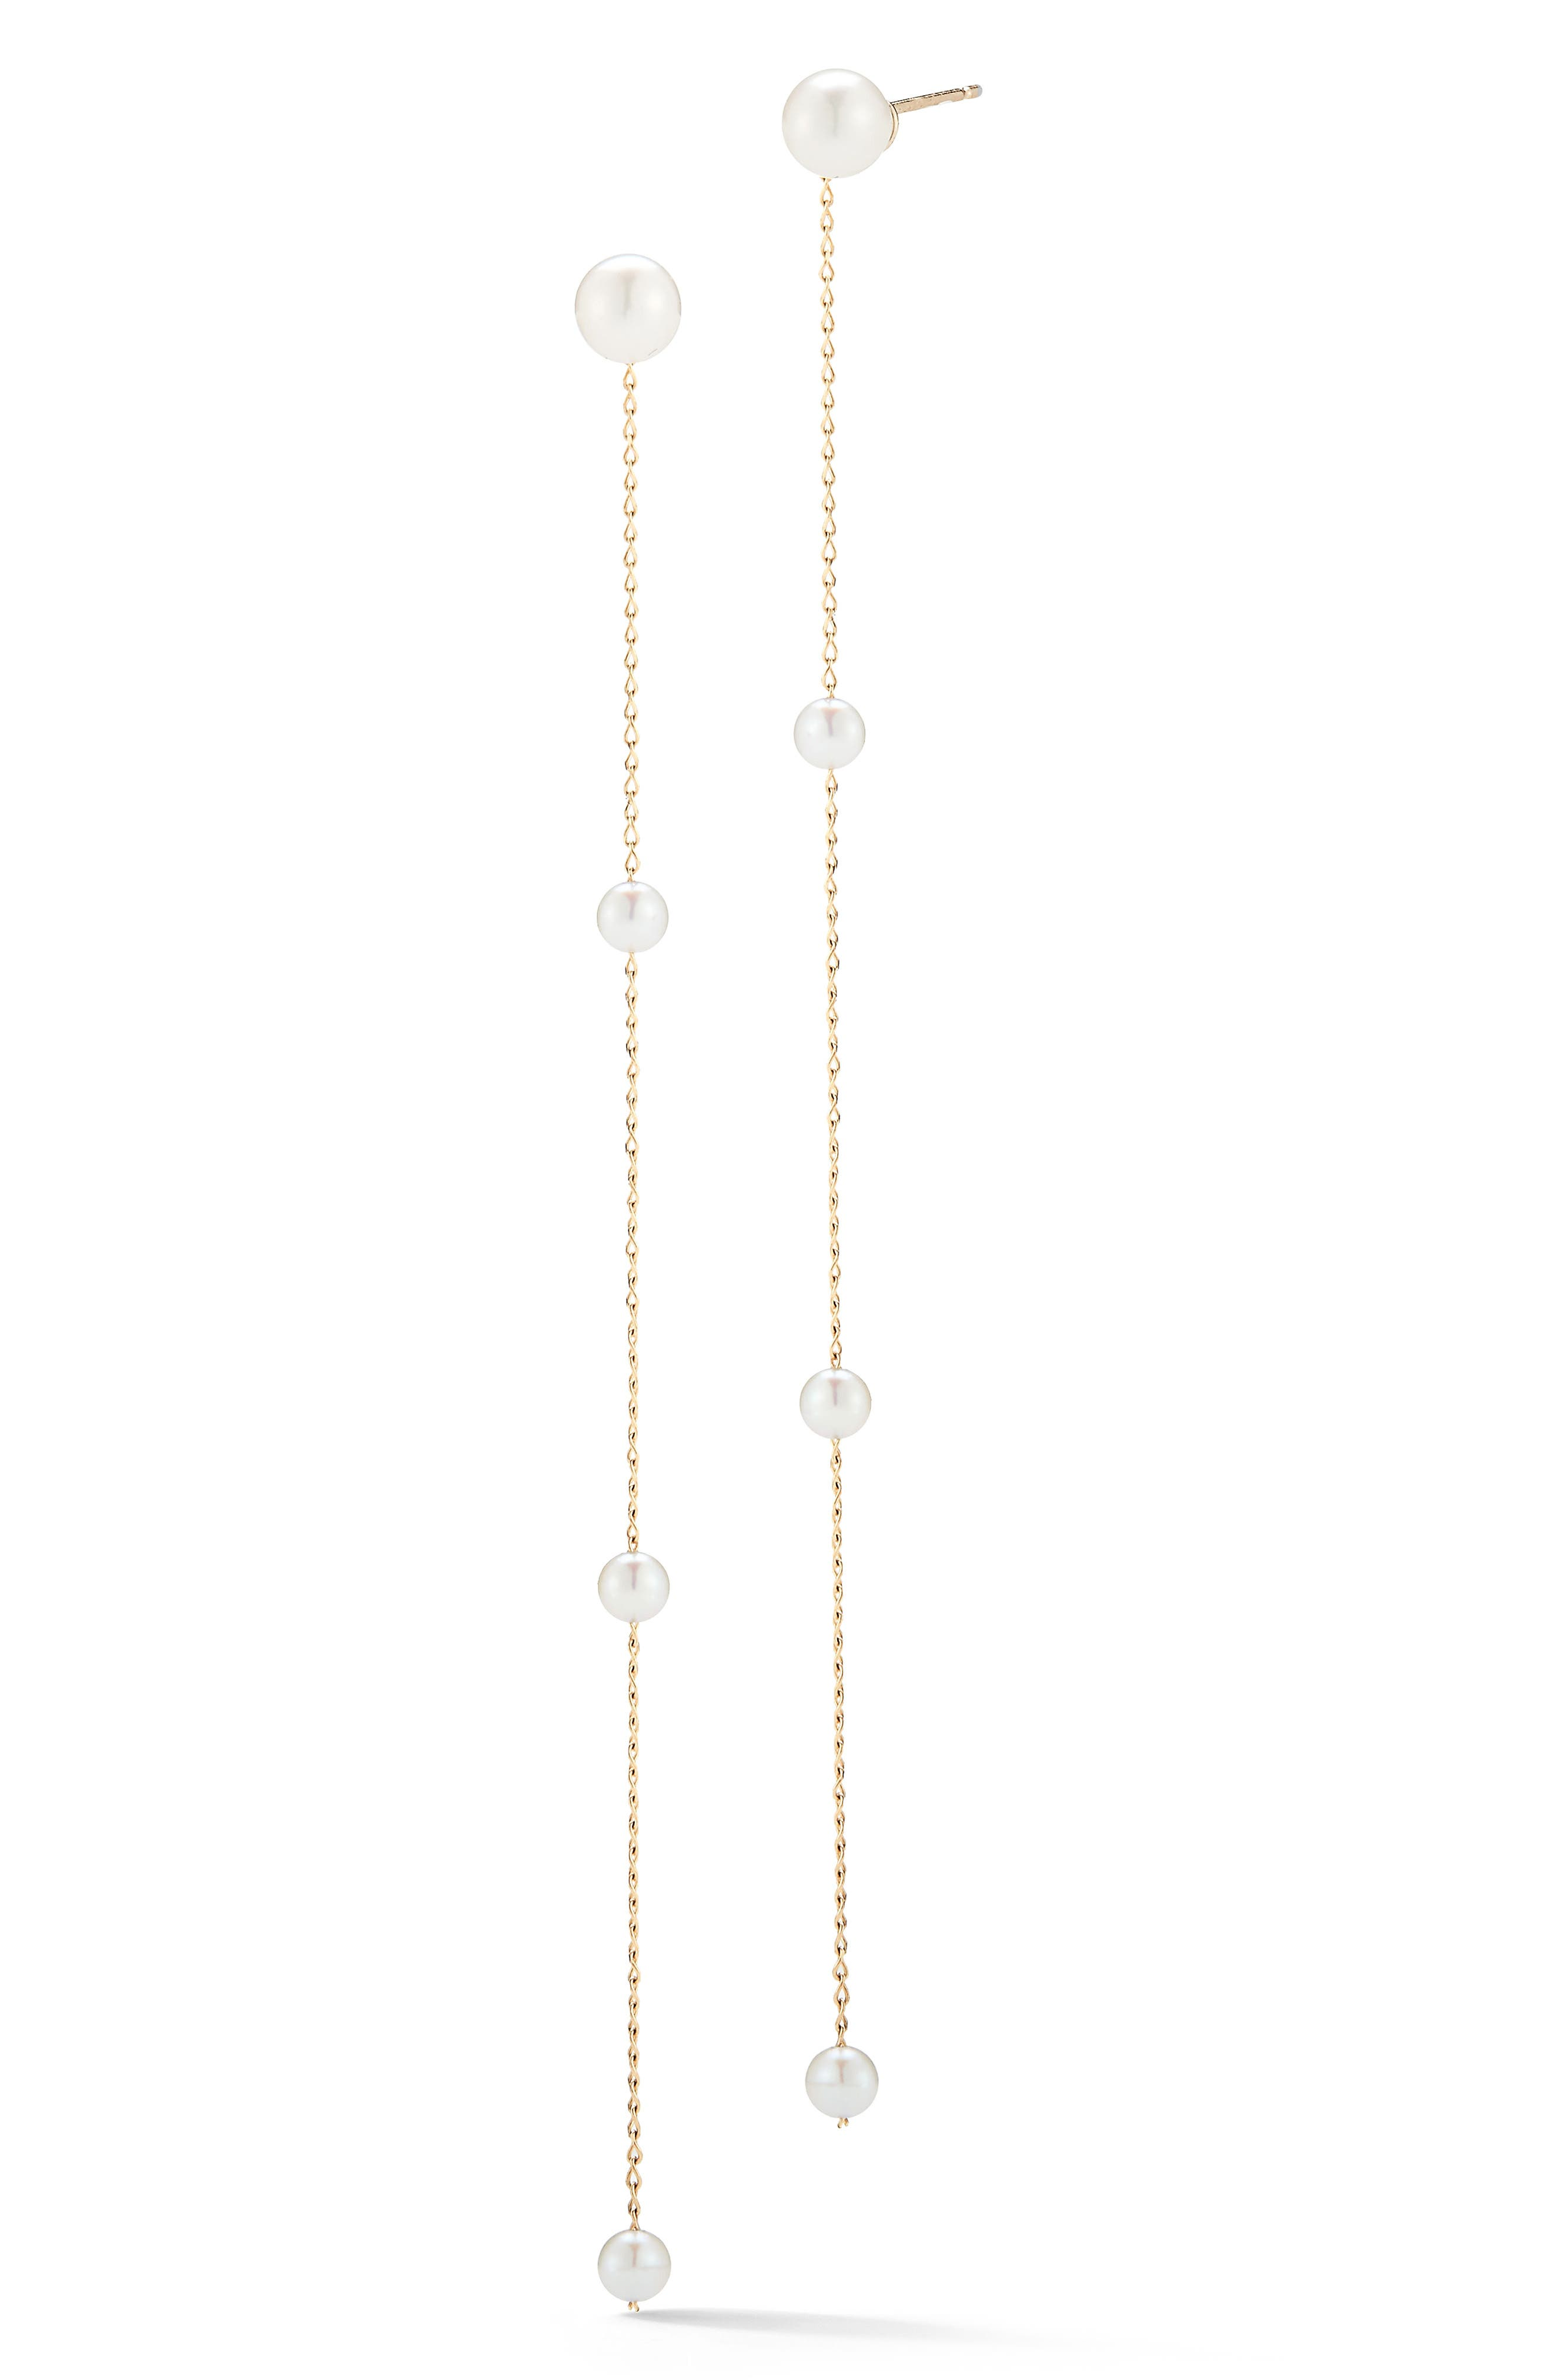 Pearl Station Linear Drop Earrings,                         Main,                         color, YELLOW GOLD